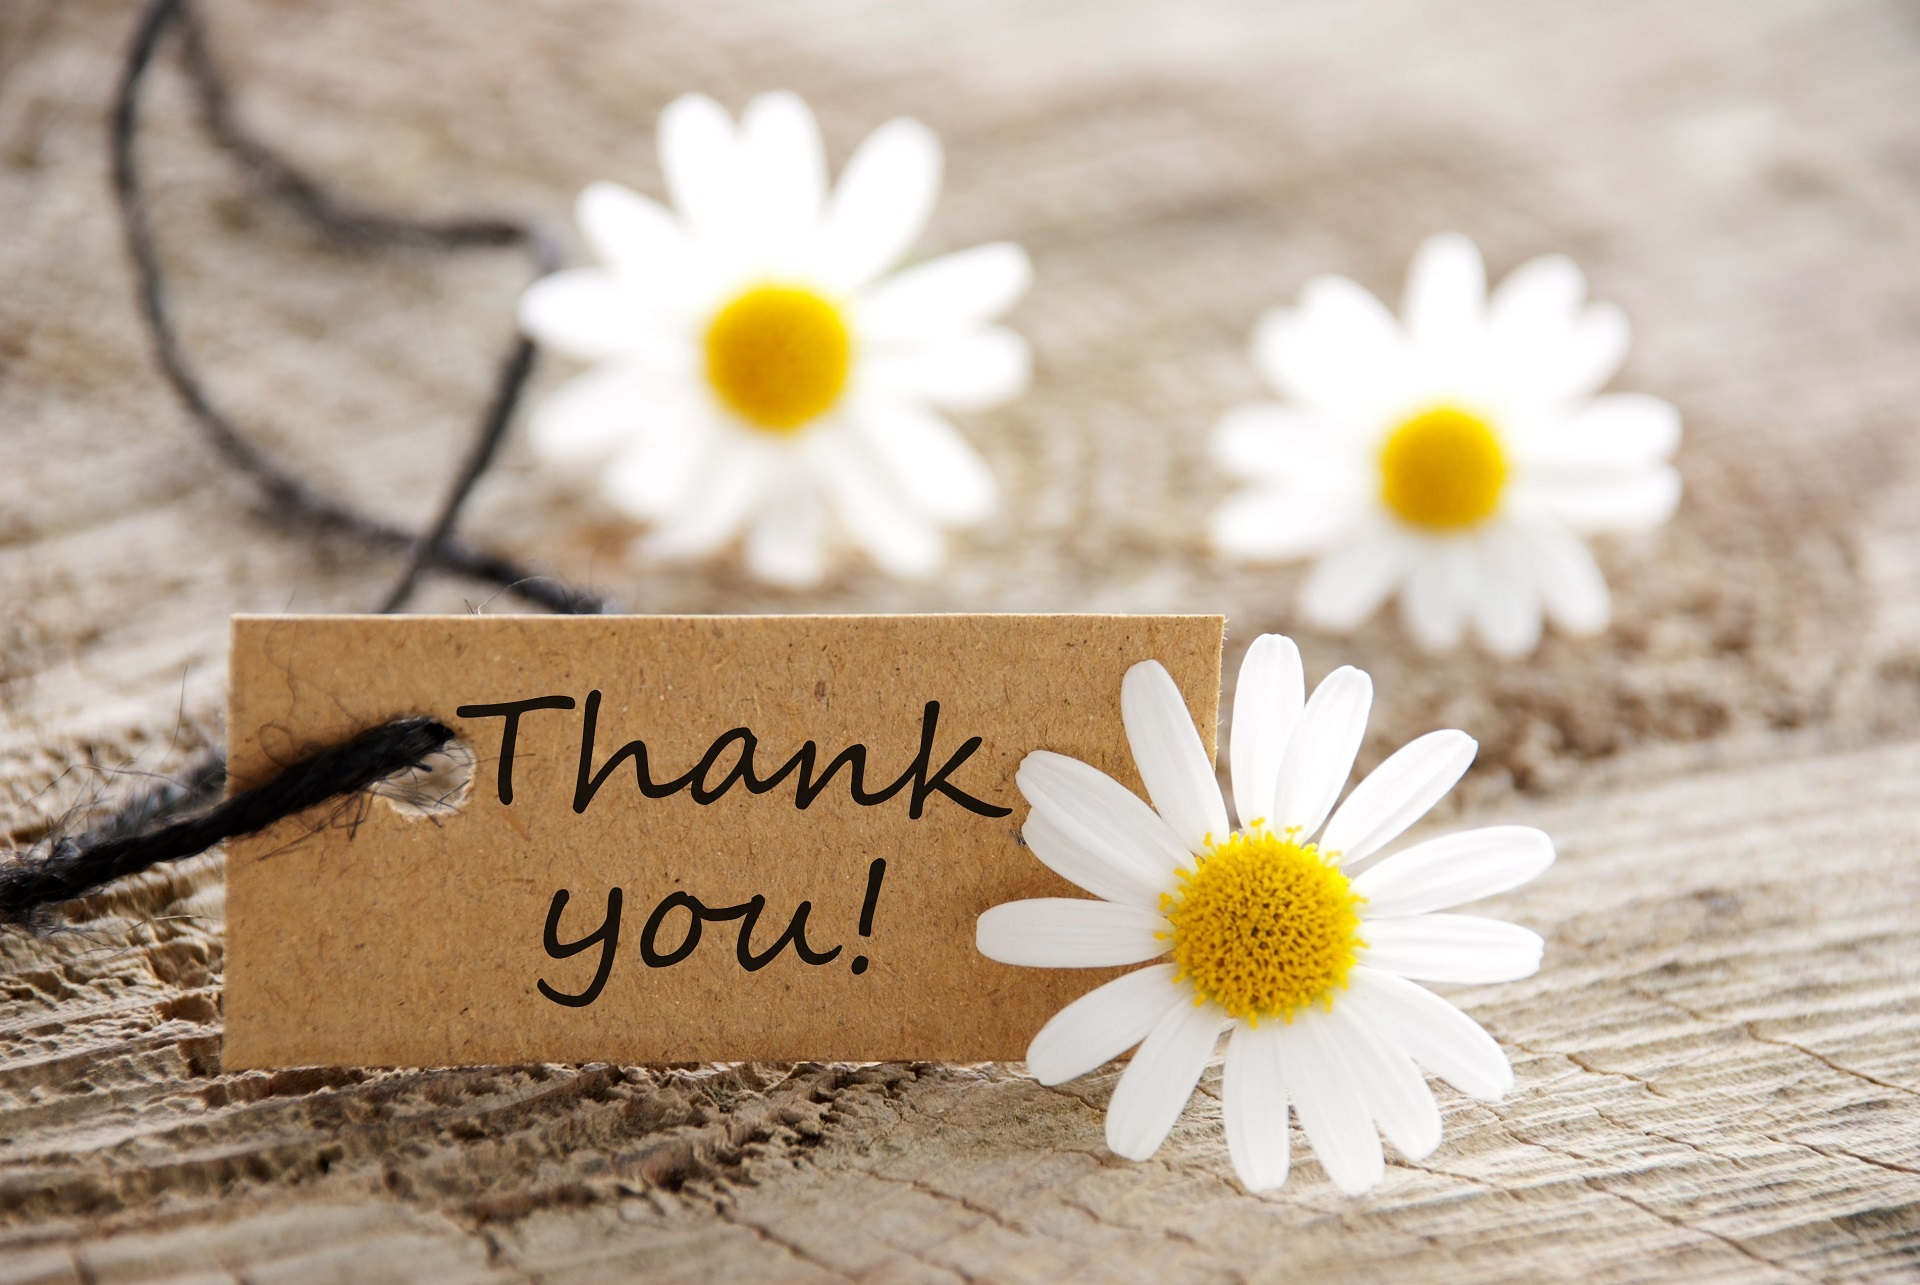 Hand-written thank you cards